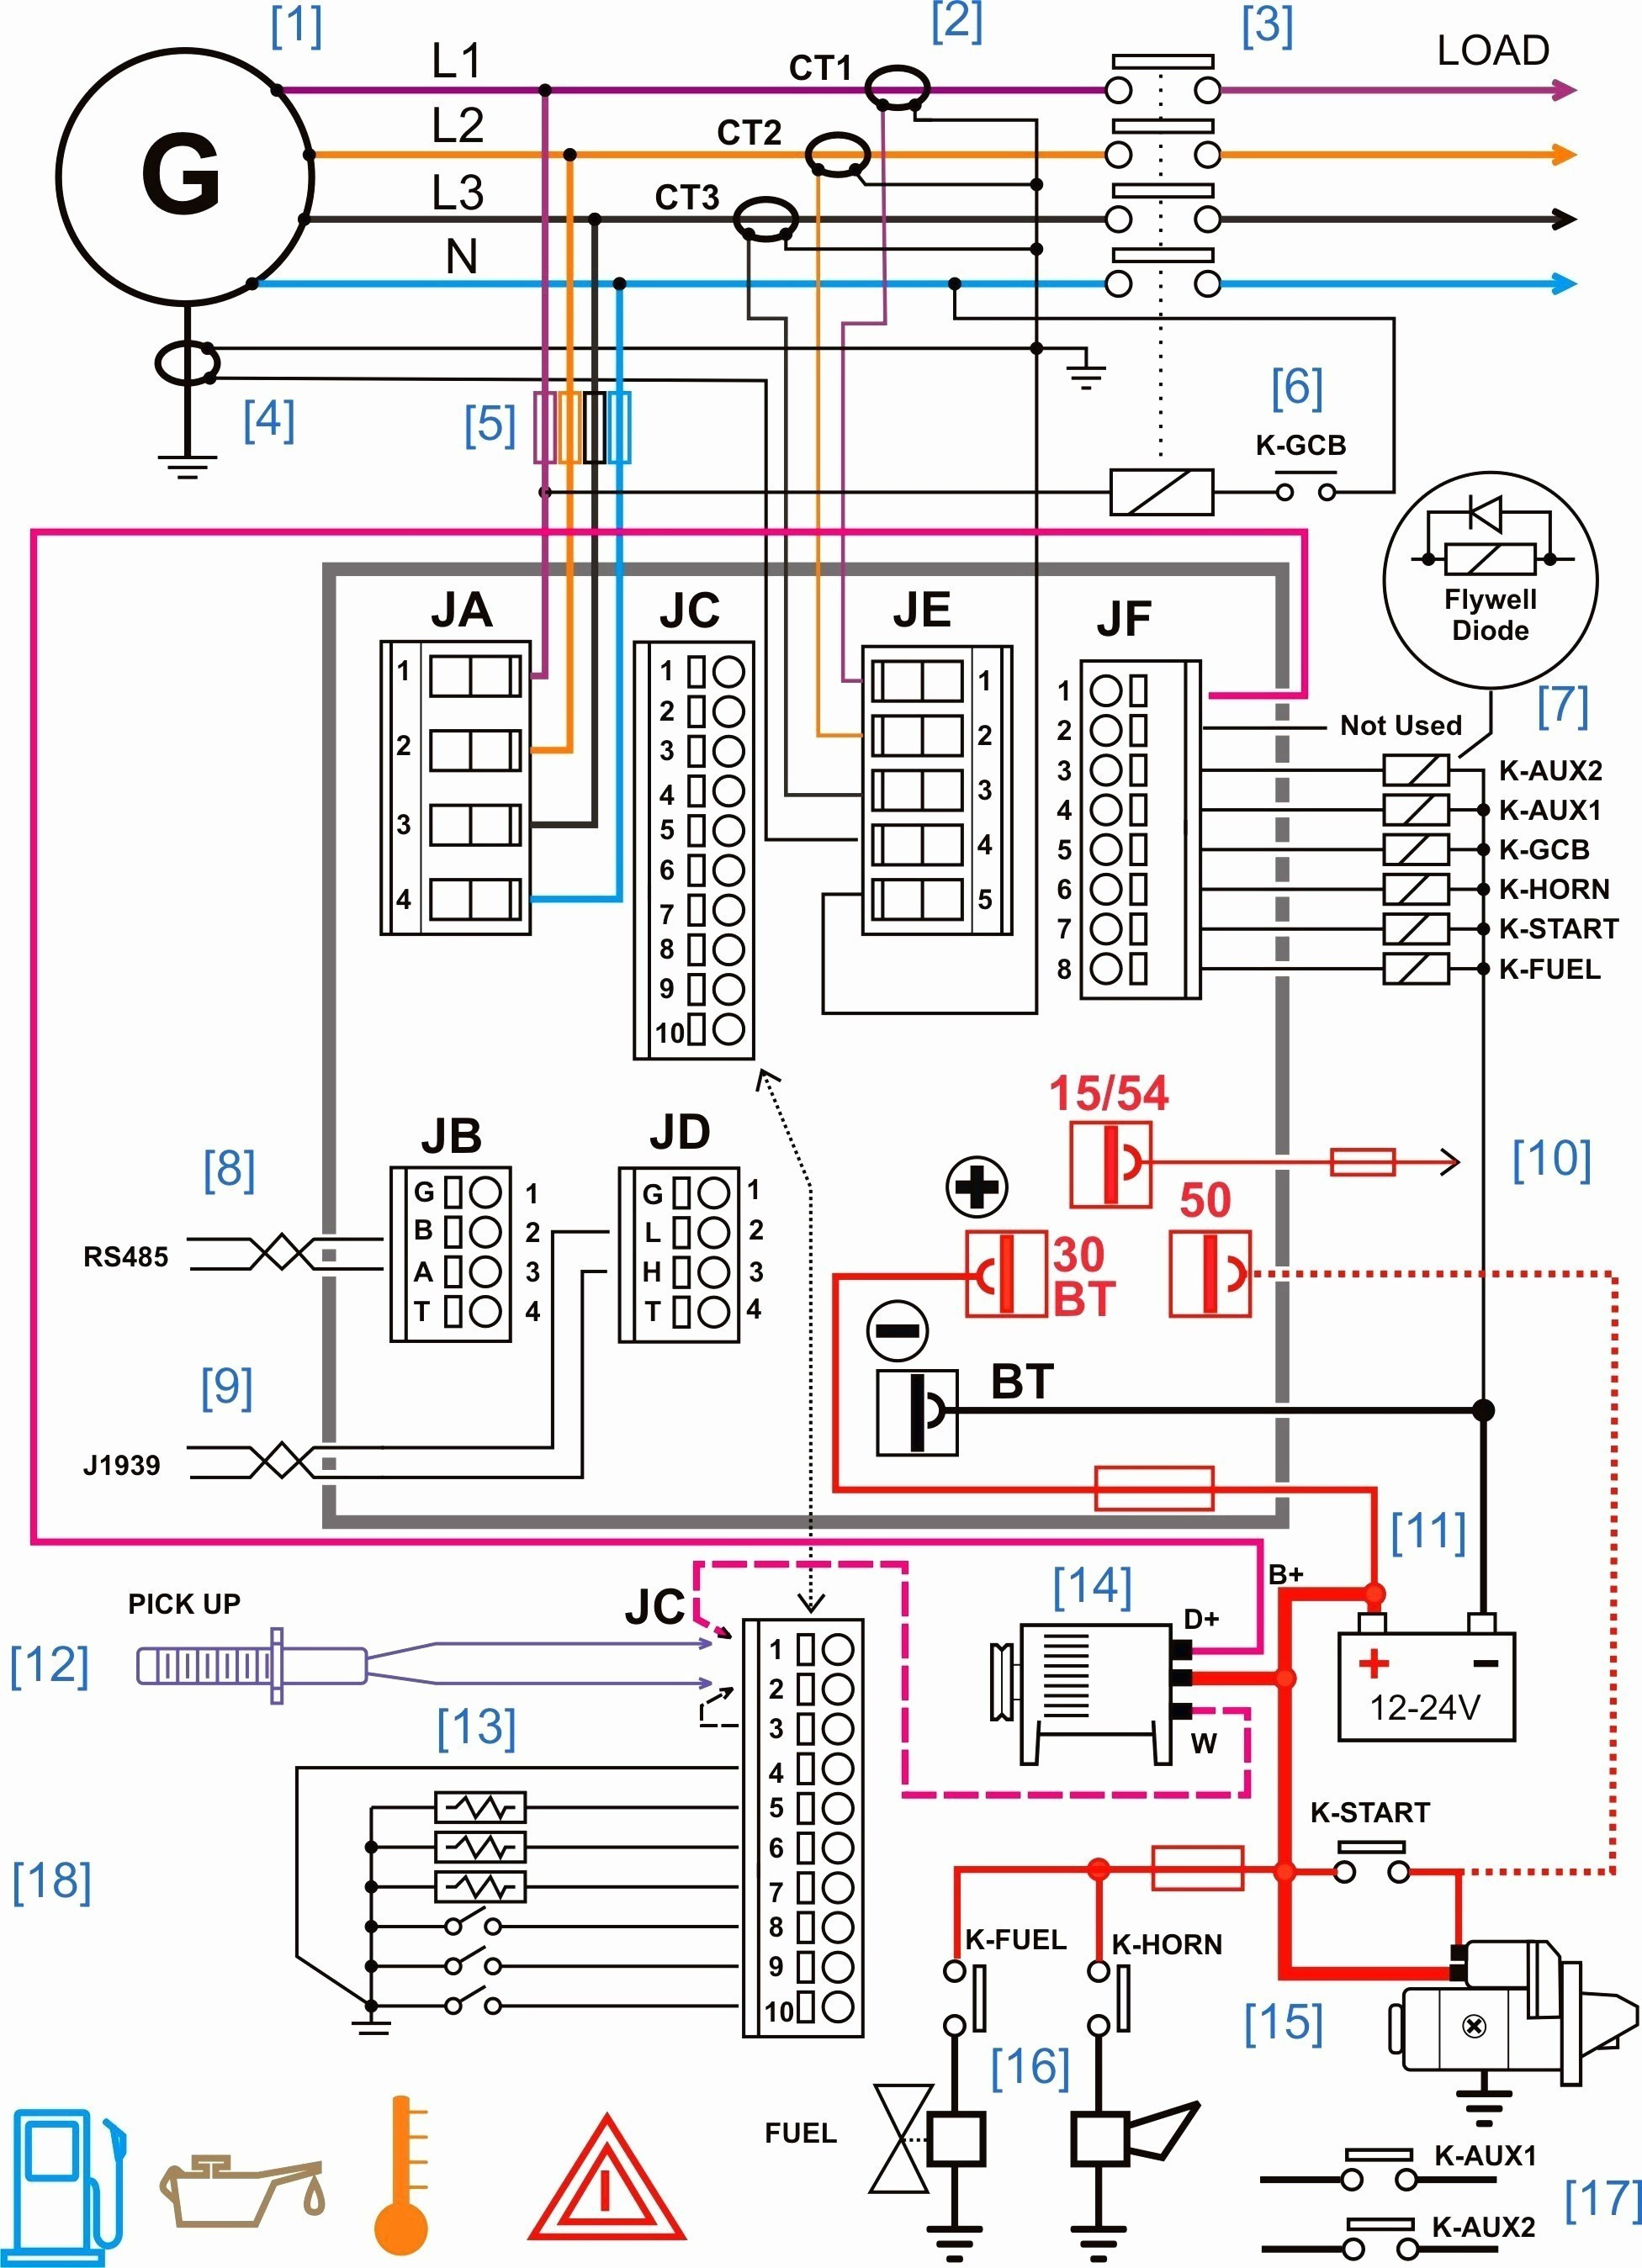 hight resolution of 1986 chevy truck radio wiring diagram save audi a4 cd player wiring diagram of 1986 chevy